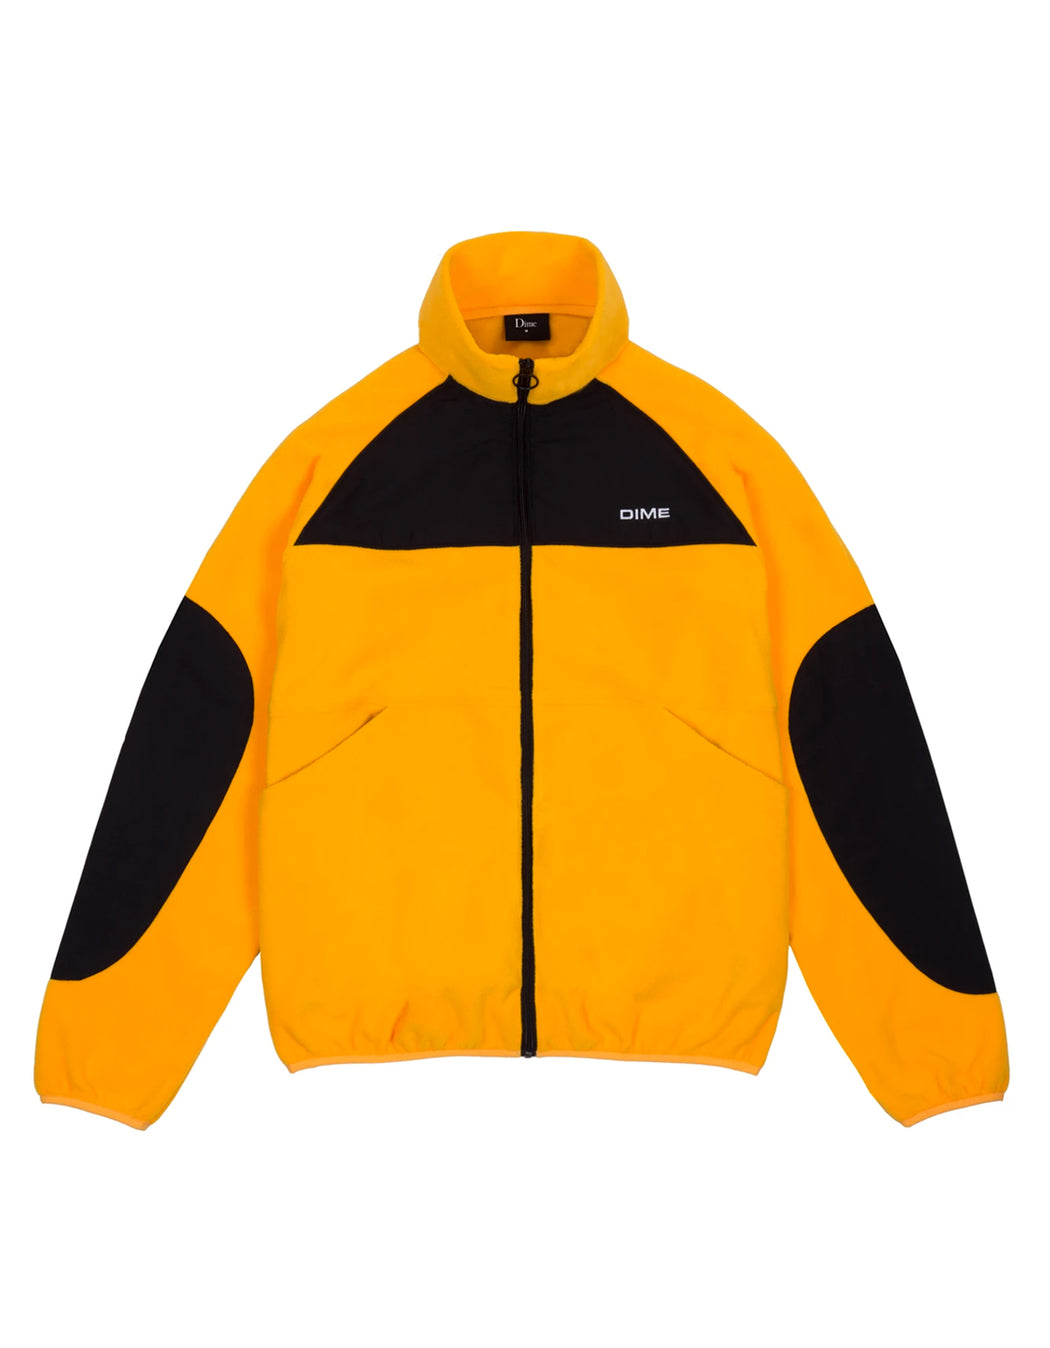 Dime Polar Fleece Track Jacket Black Gold